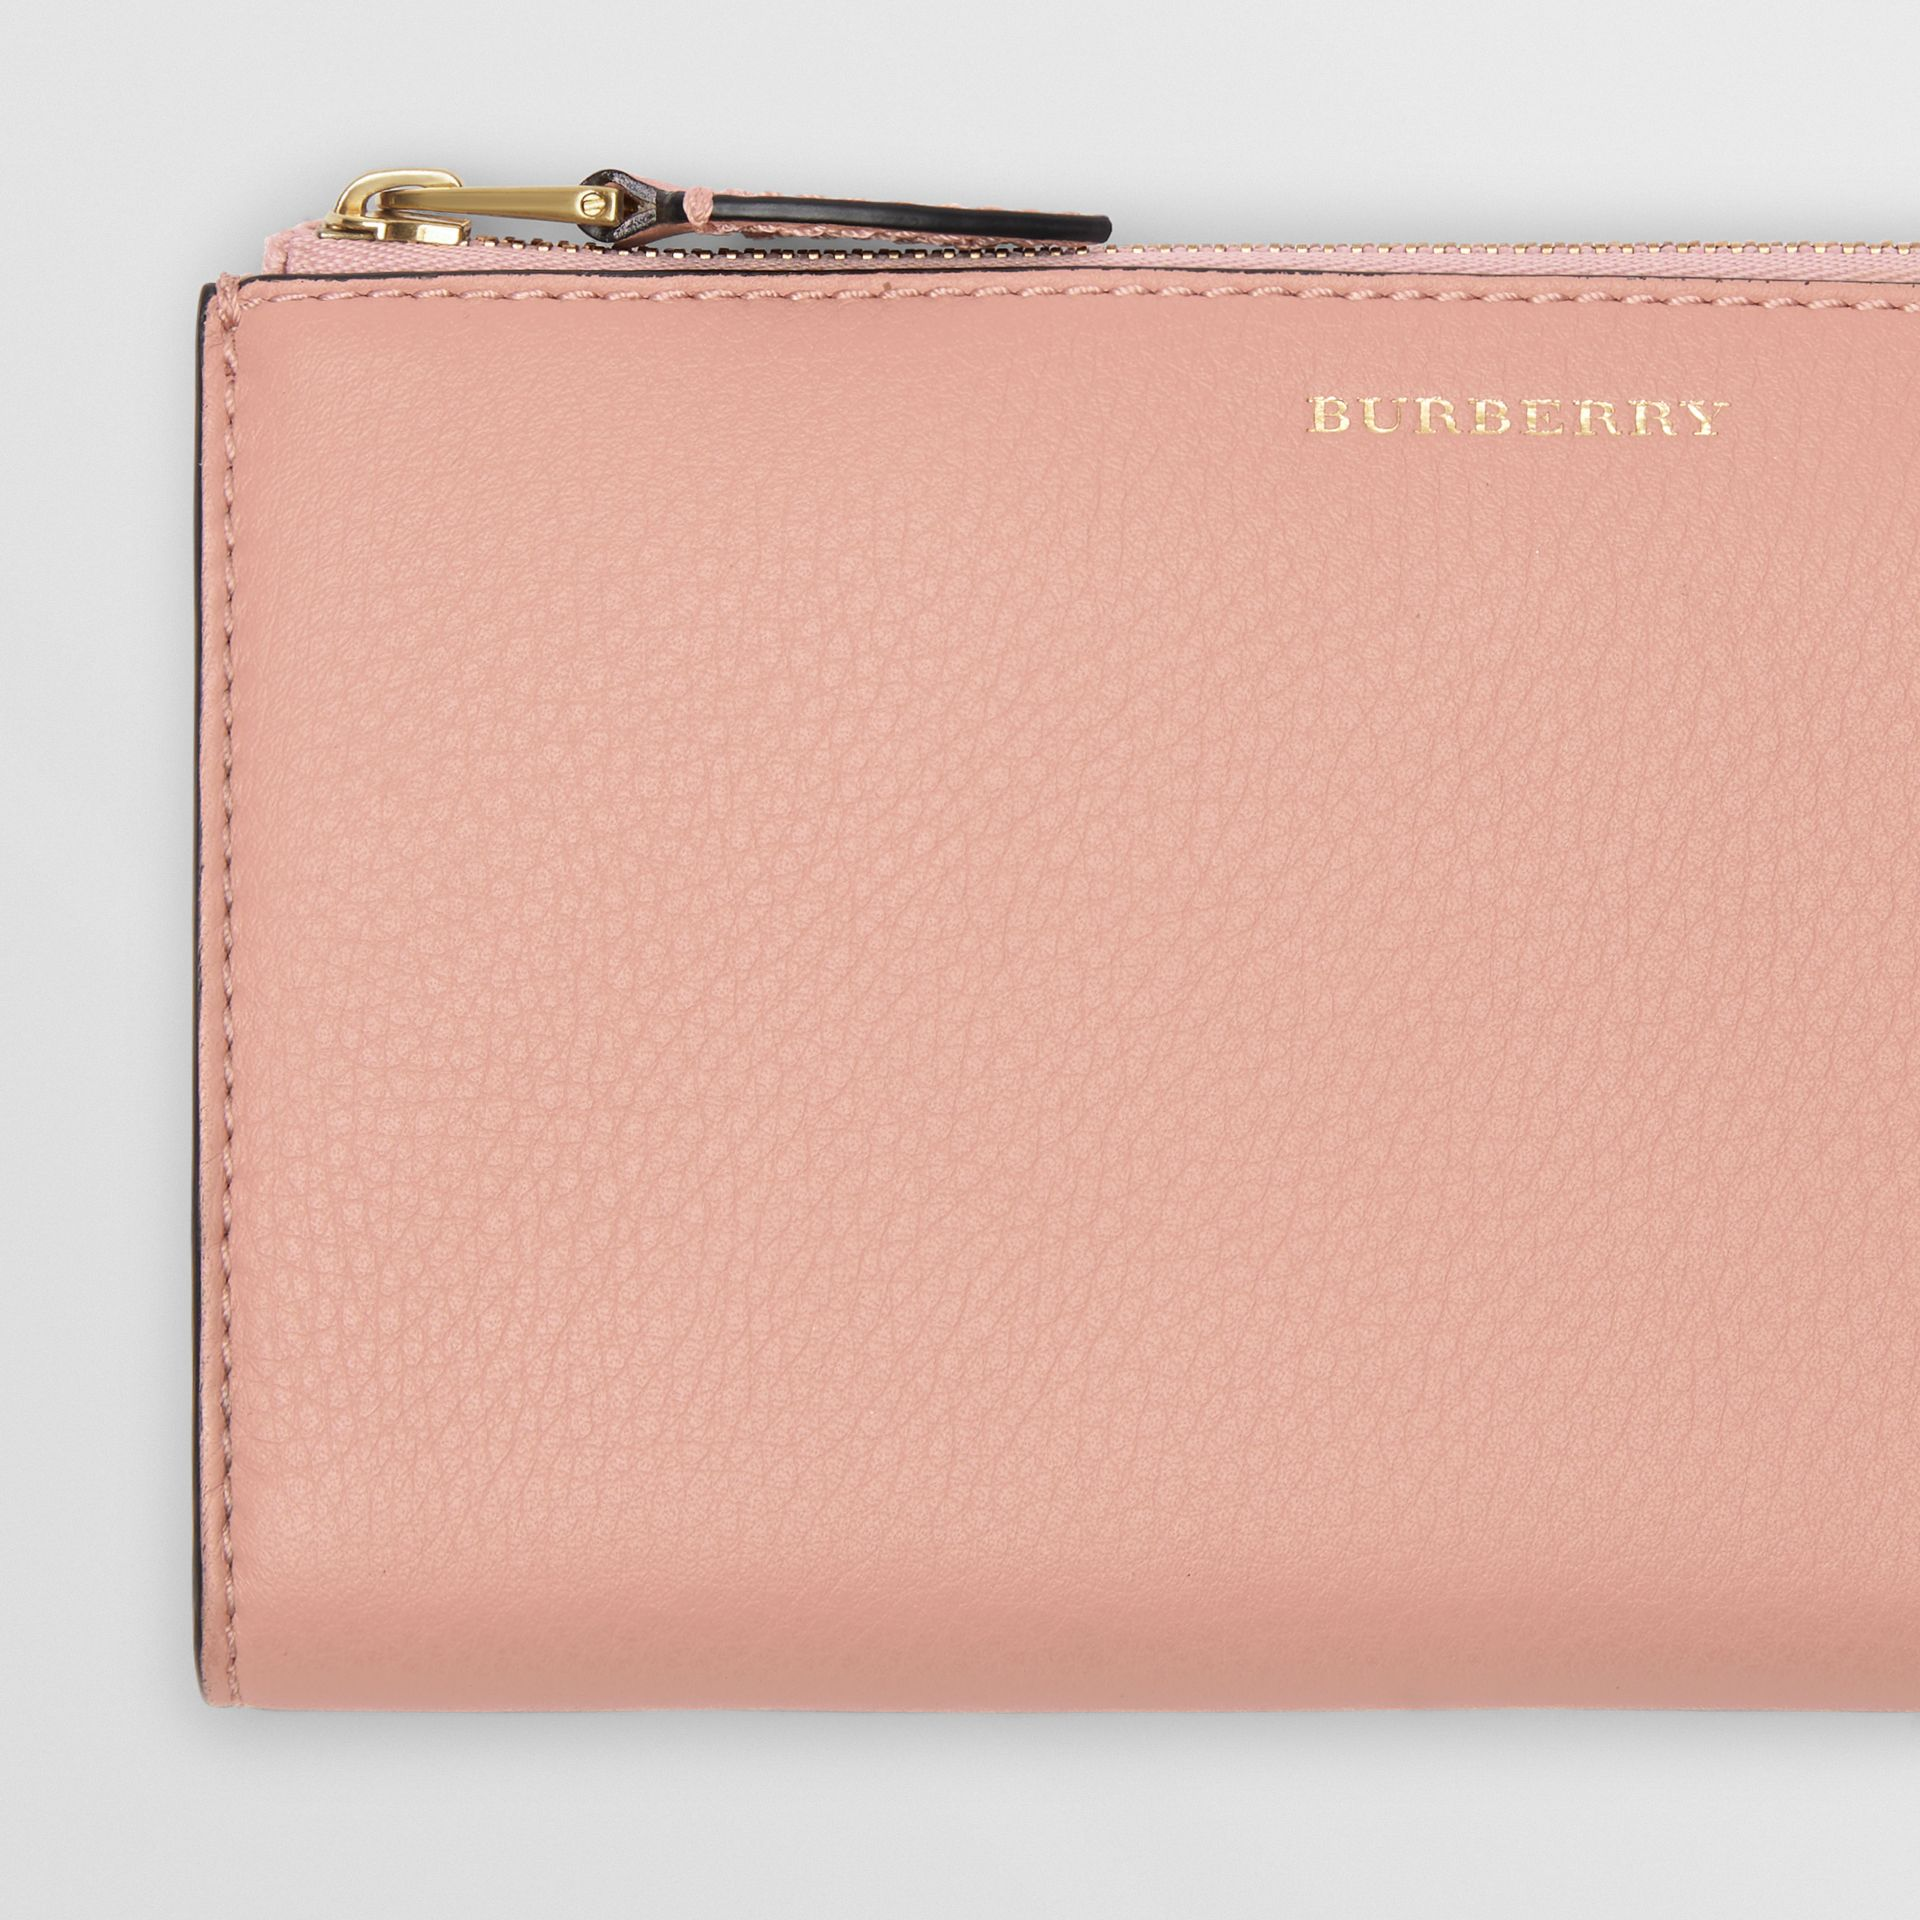 Two-tone Leather Ziparound Wallet and Coin Case in Ash Rose - Women | Burberry - gallery image 1